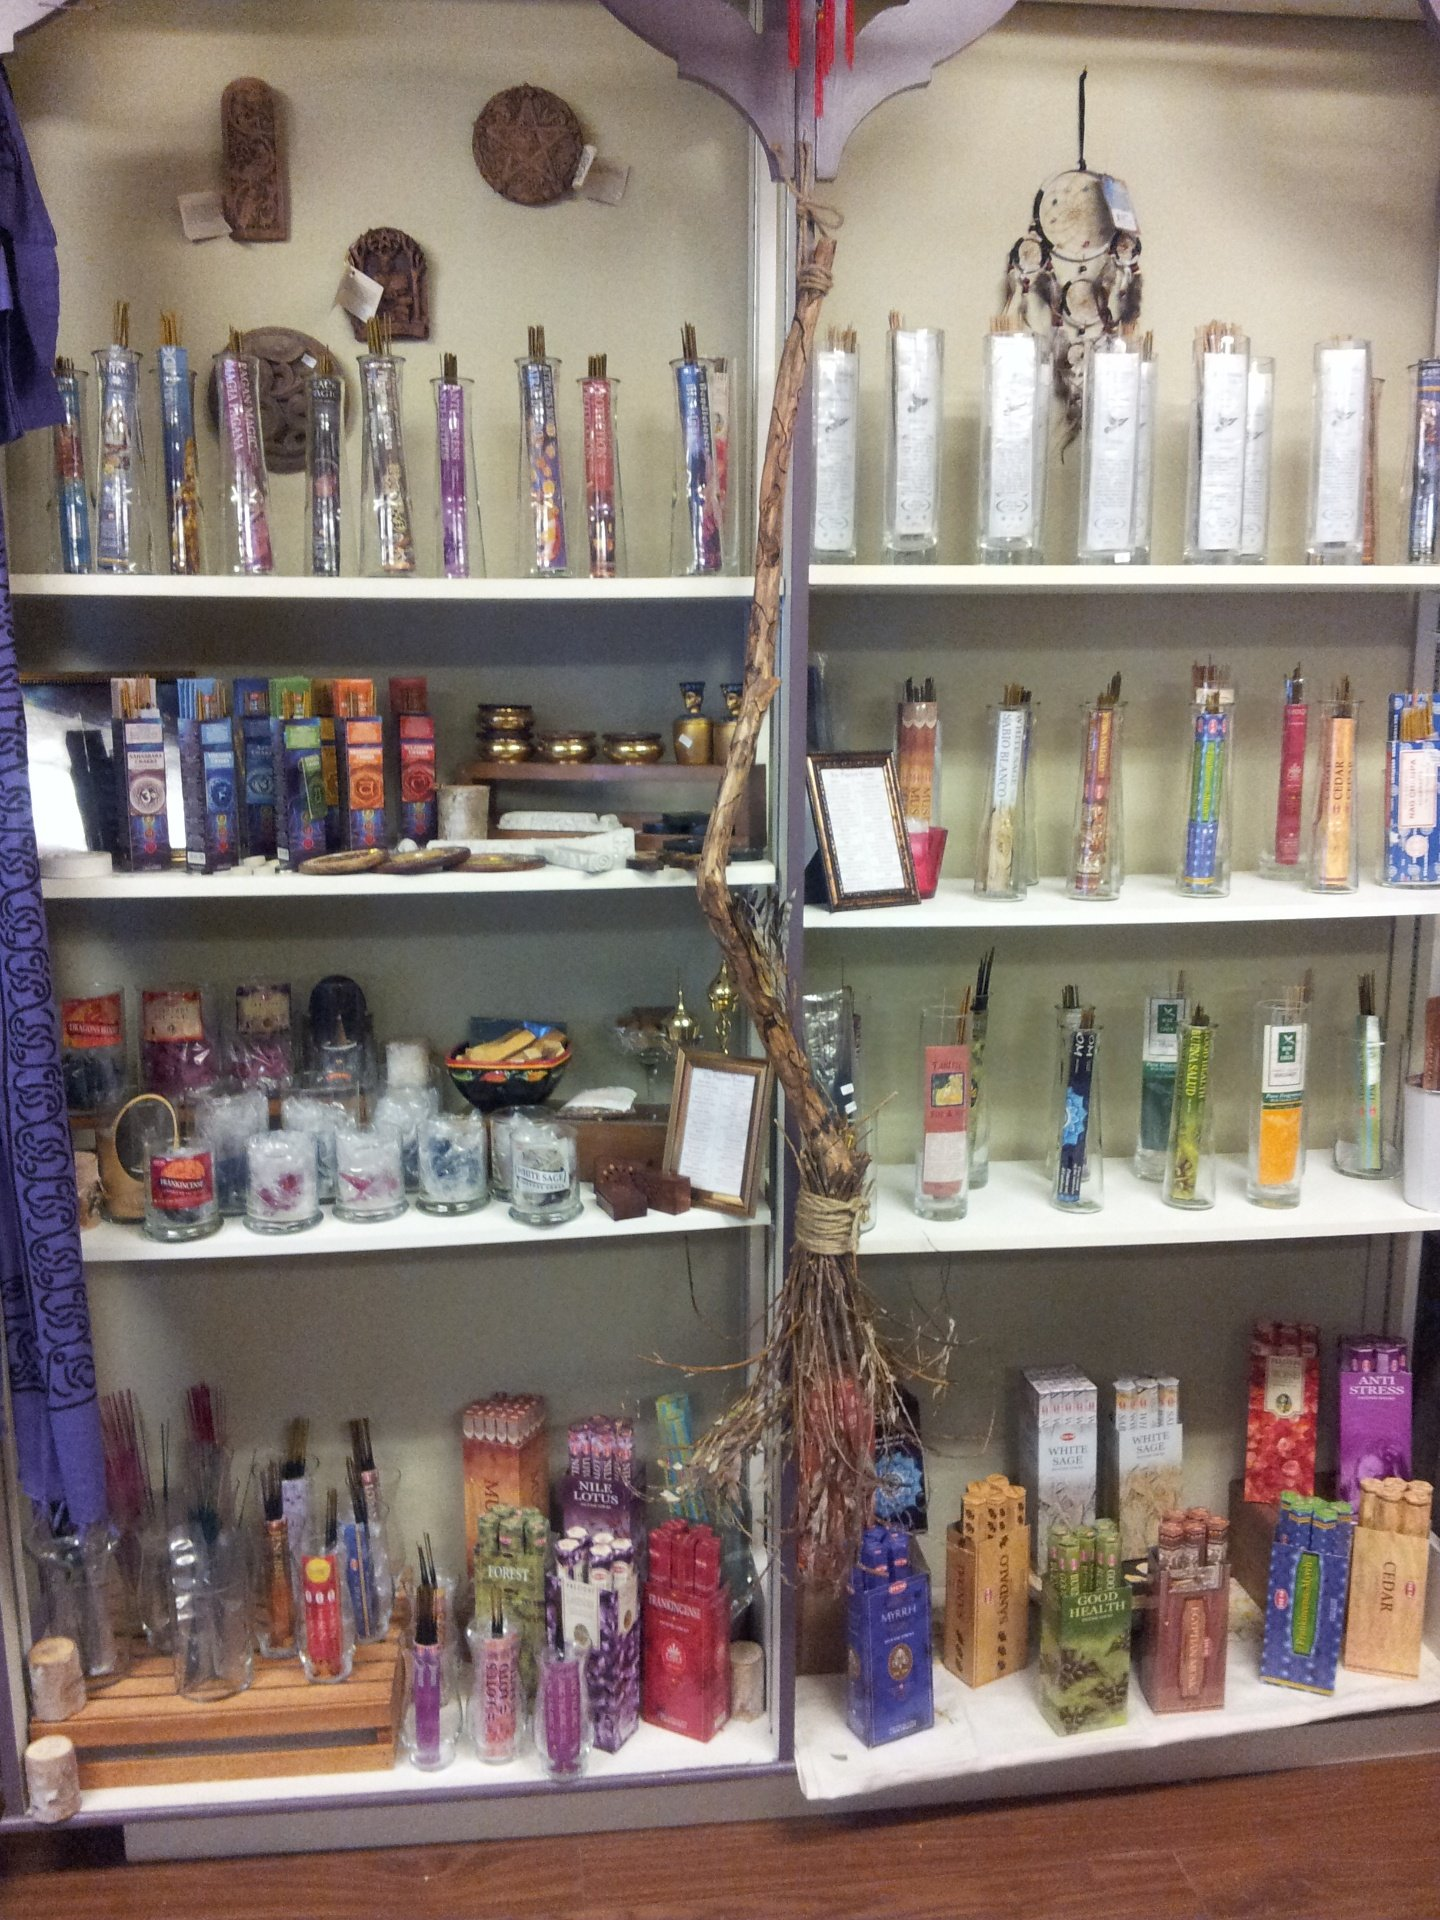 Incense, Besom Broomsticks, Tapestry, Wall Plaques, Curtains, Sarongs